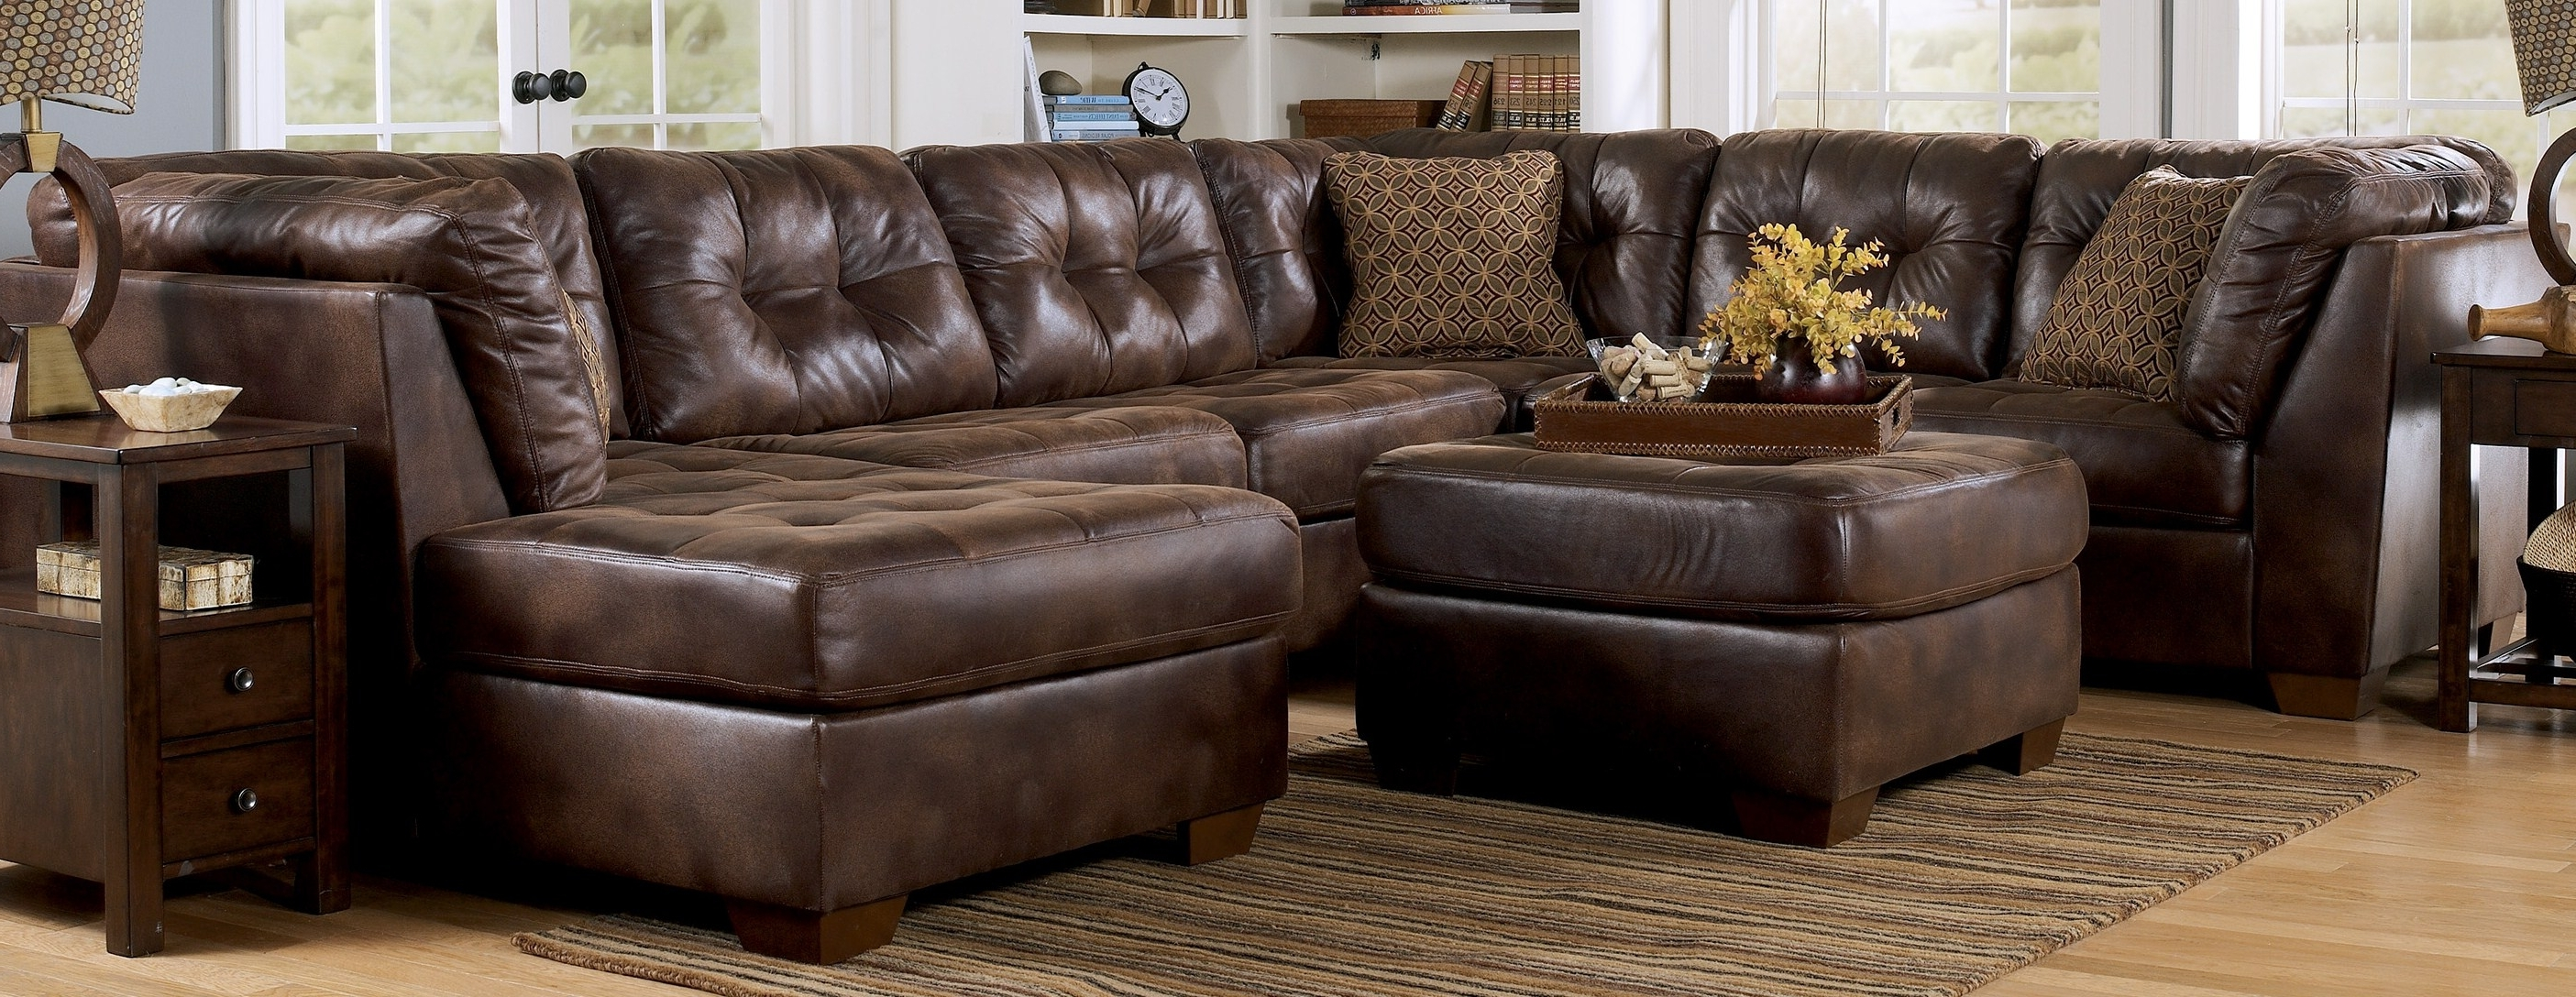 Newest Leather Sectionals With Chaise And Ottoman For Big Lots Recliners Ashley Furniture Sectional Sofas Cheap (View 17 of 20)